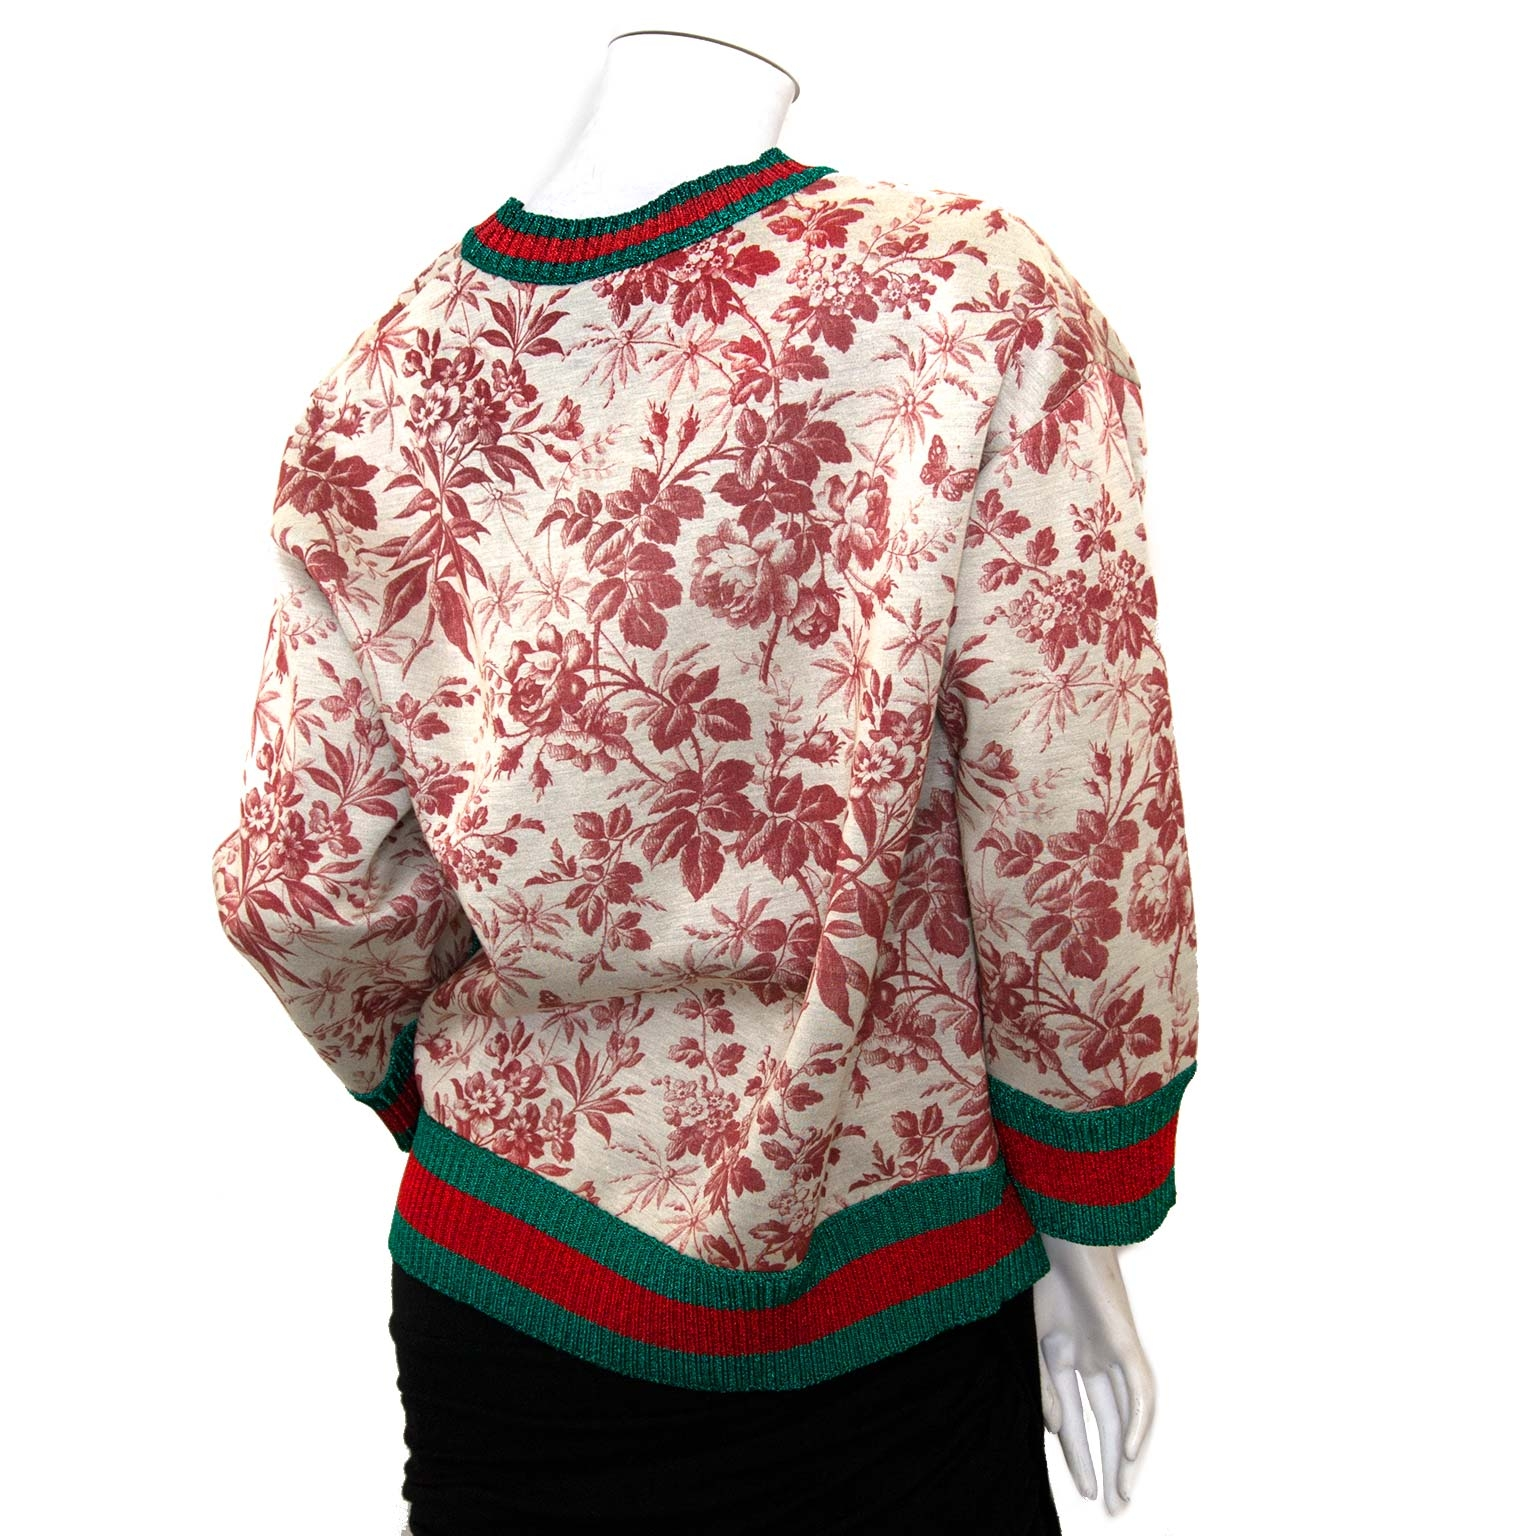 Buy authentic Gucci sweatshirts online at labellov vintage fashion webshop